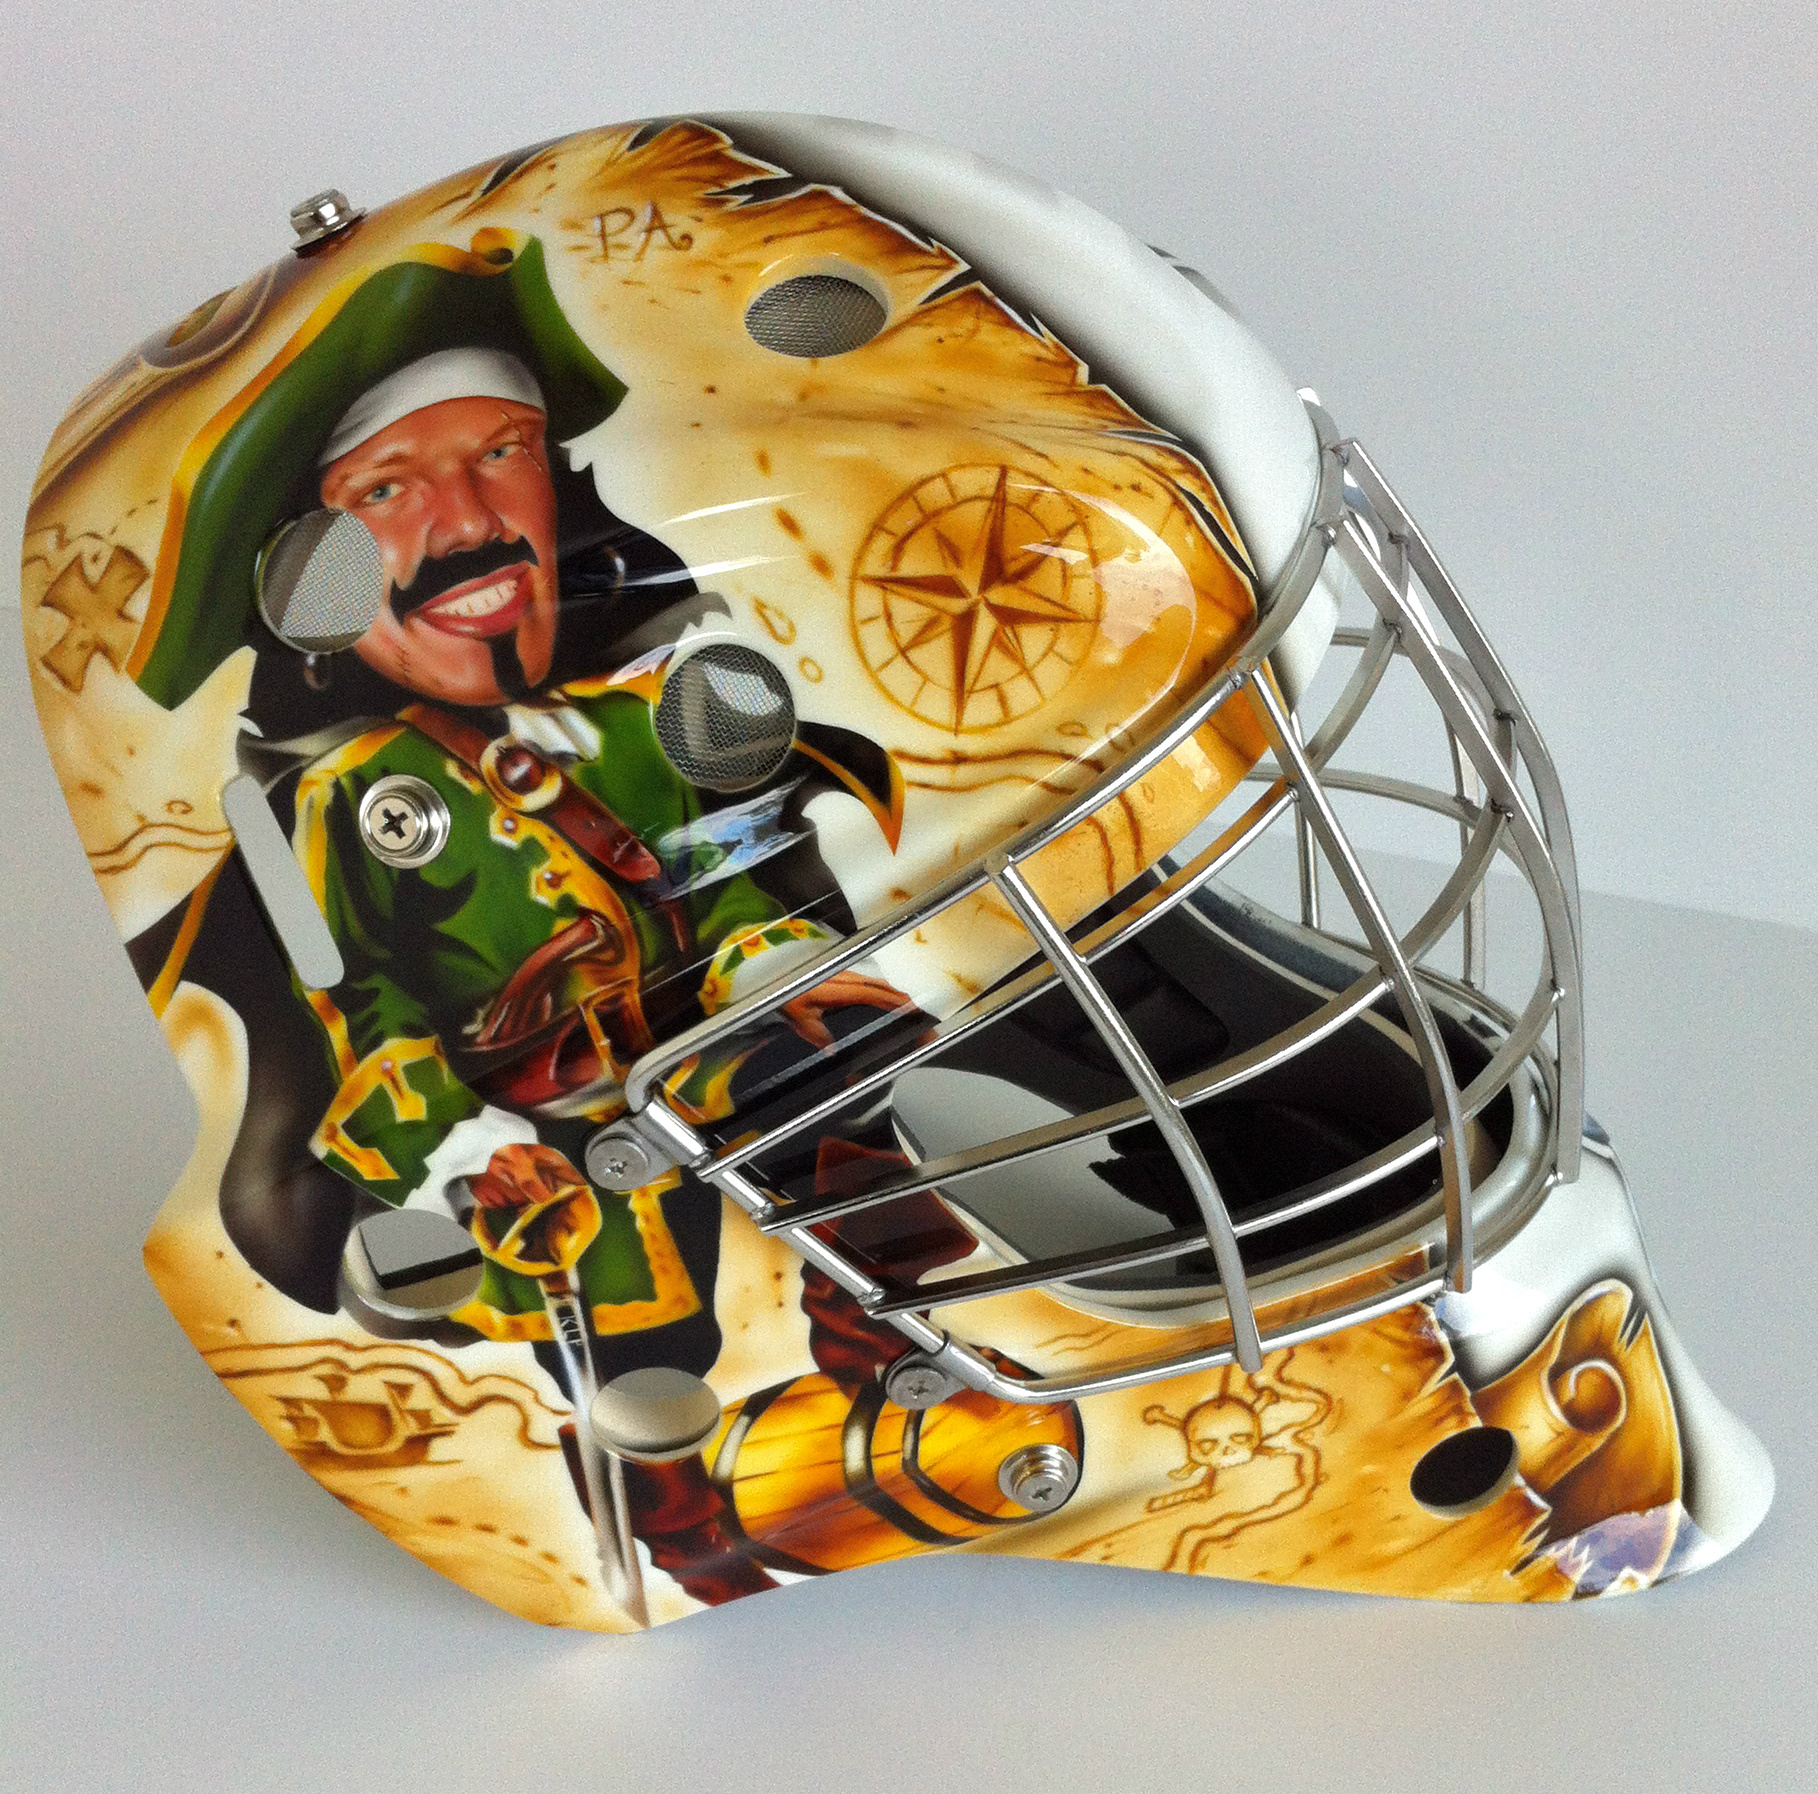 Hey Raider fans, check out Luke Siemens' new mask! What do you think? #goaliestyle http://t.co/OmNzrzcp